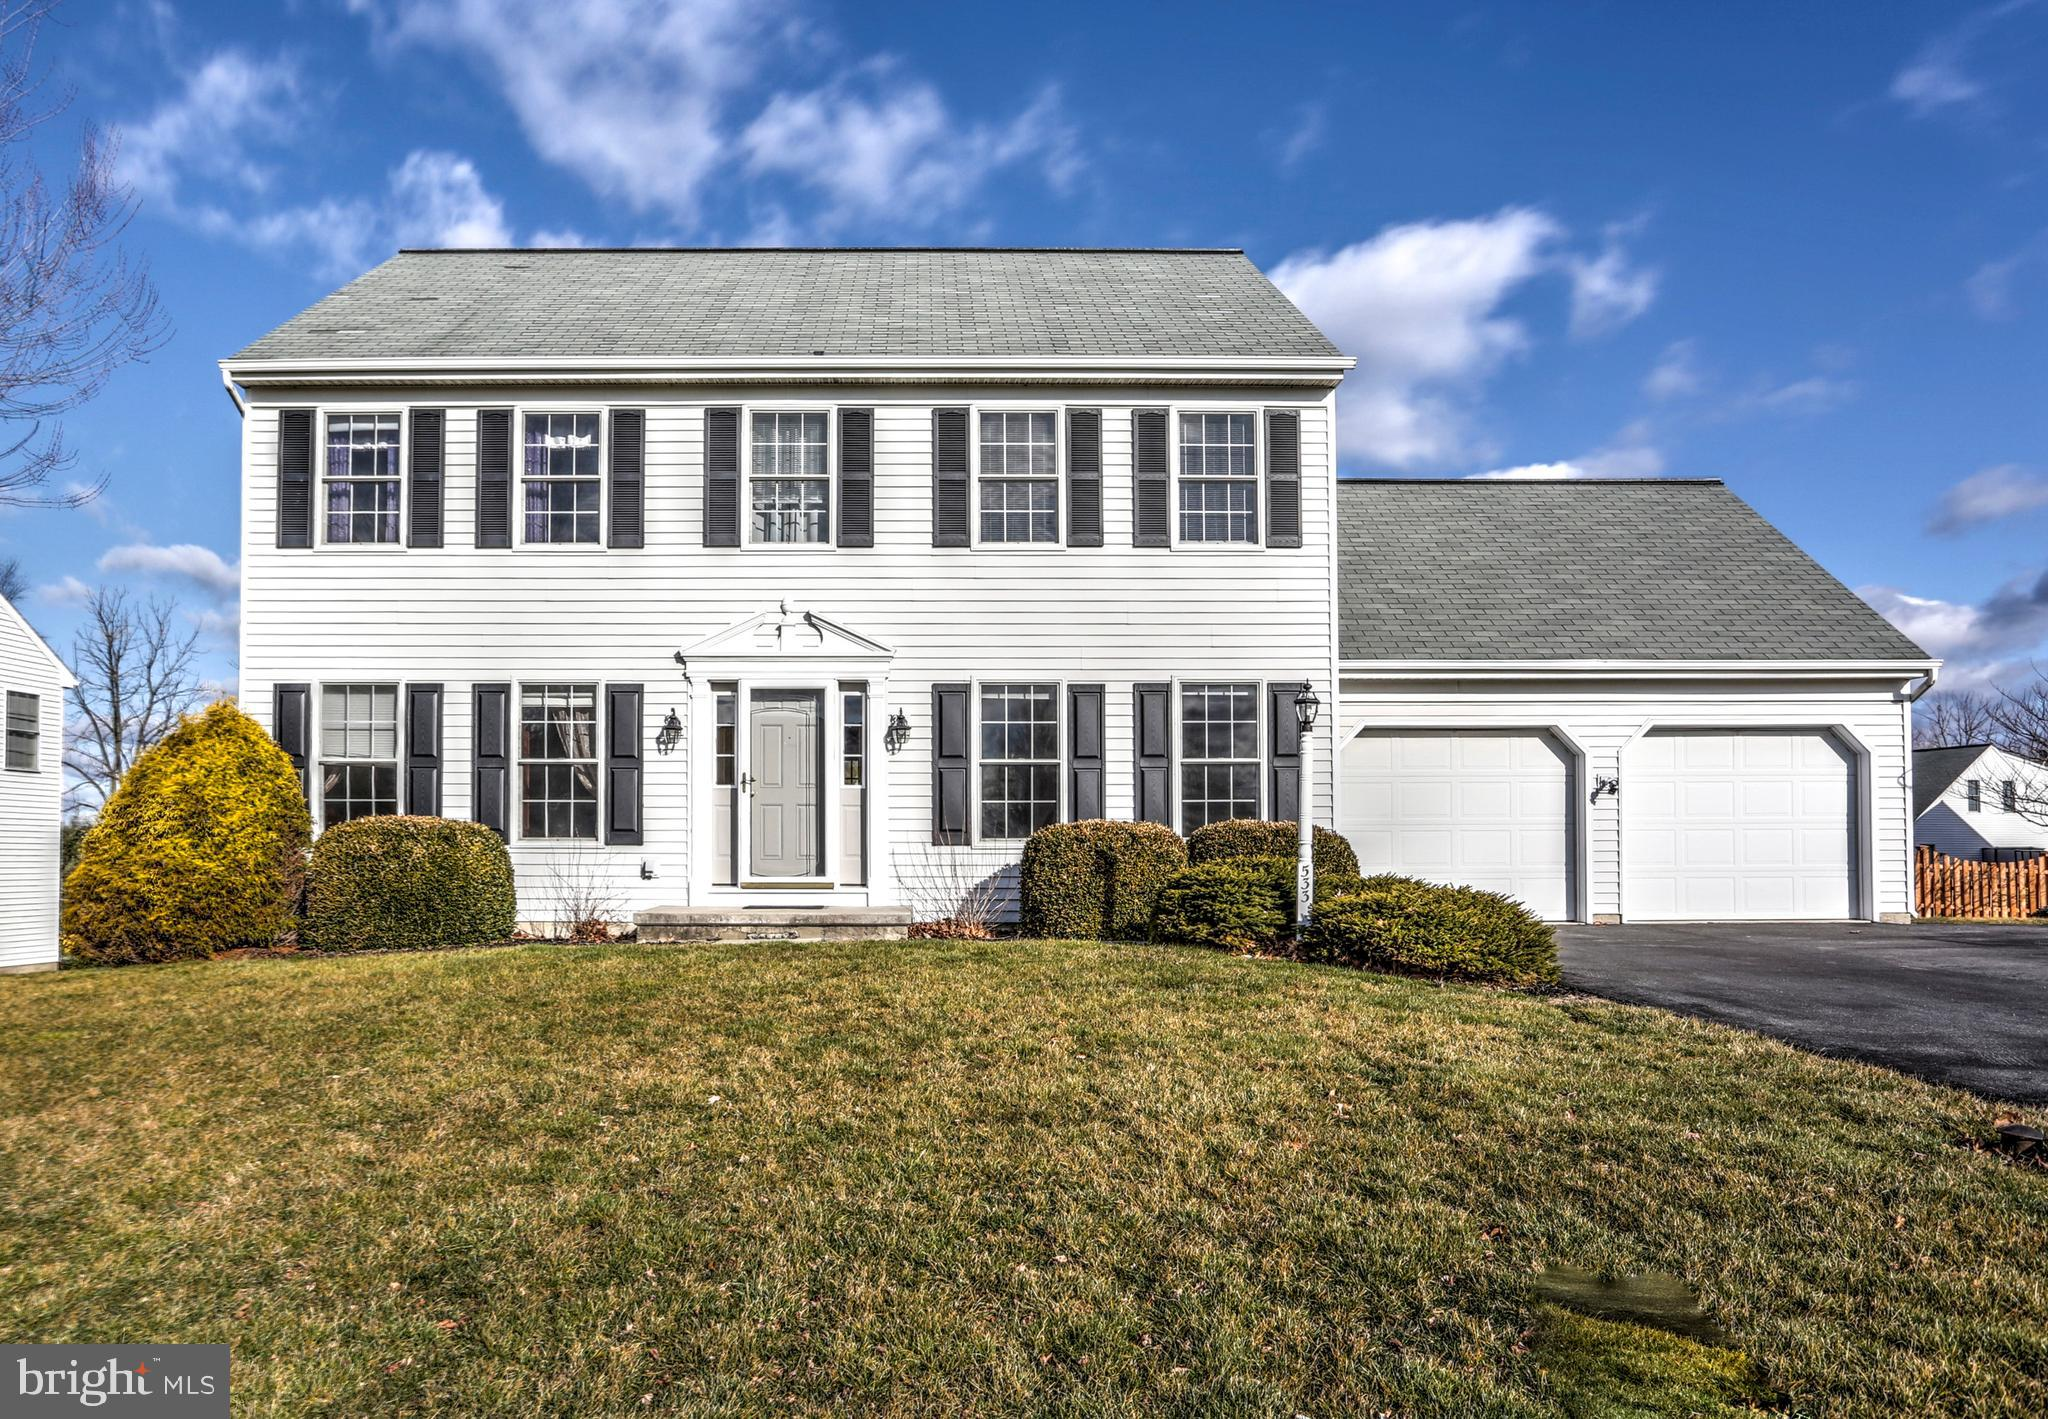 533 SPRING HOLLOW DRIVE, NEW HOLLAND, PA 17557